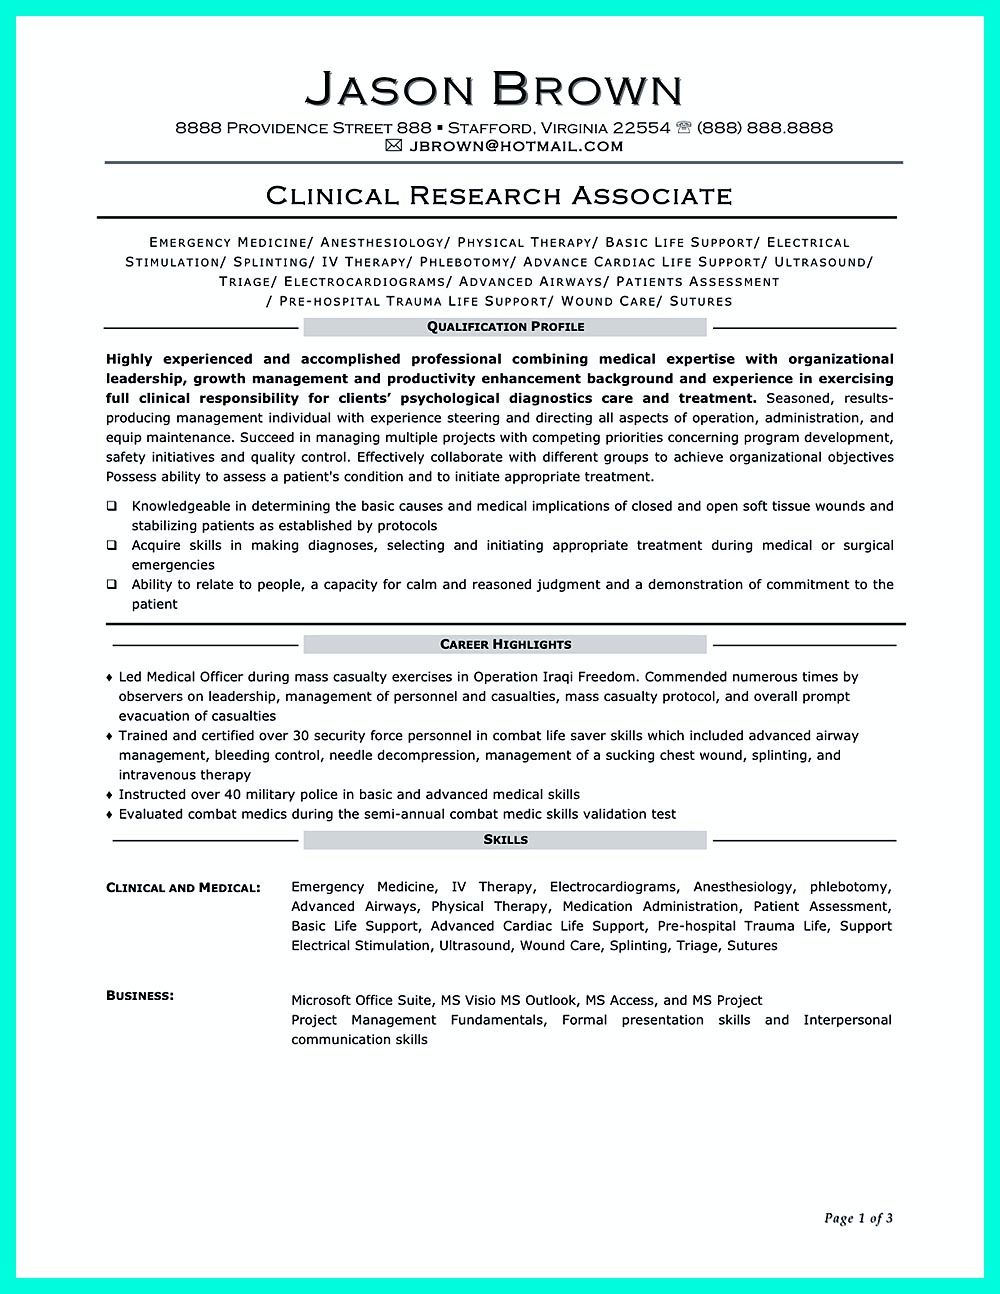 Clinical Research Associate Resume Objective Pin By Teresa Iseral Beach On Sample